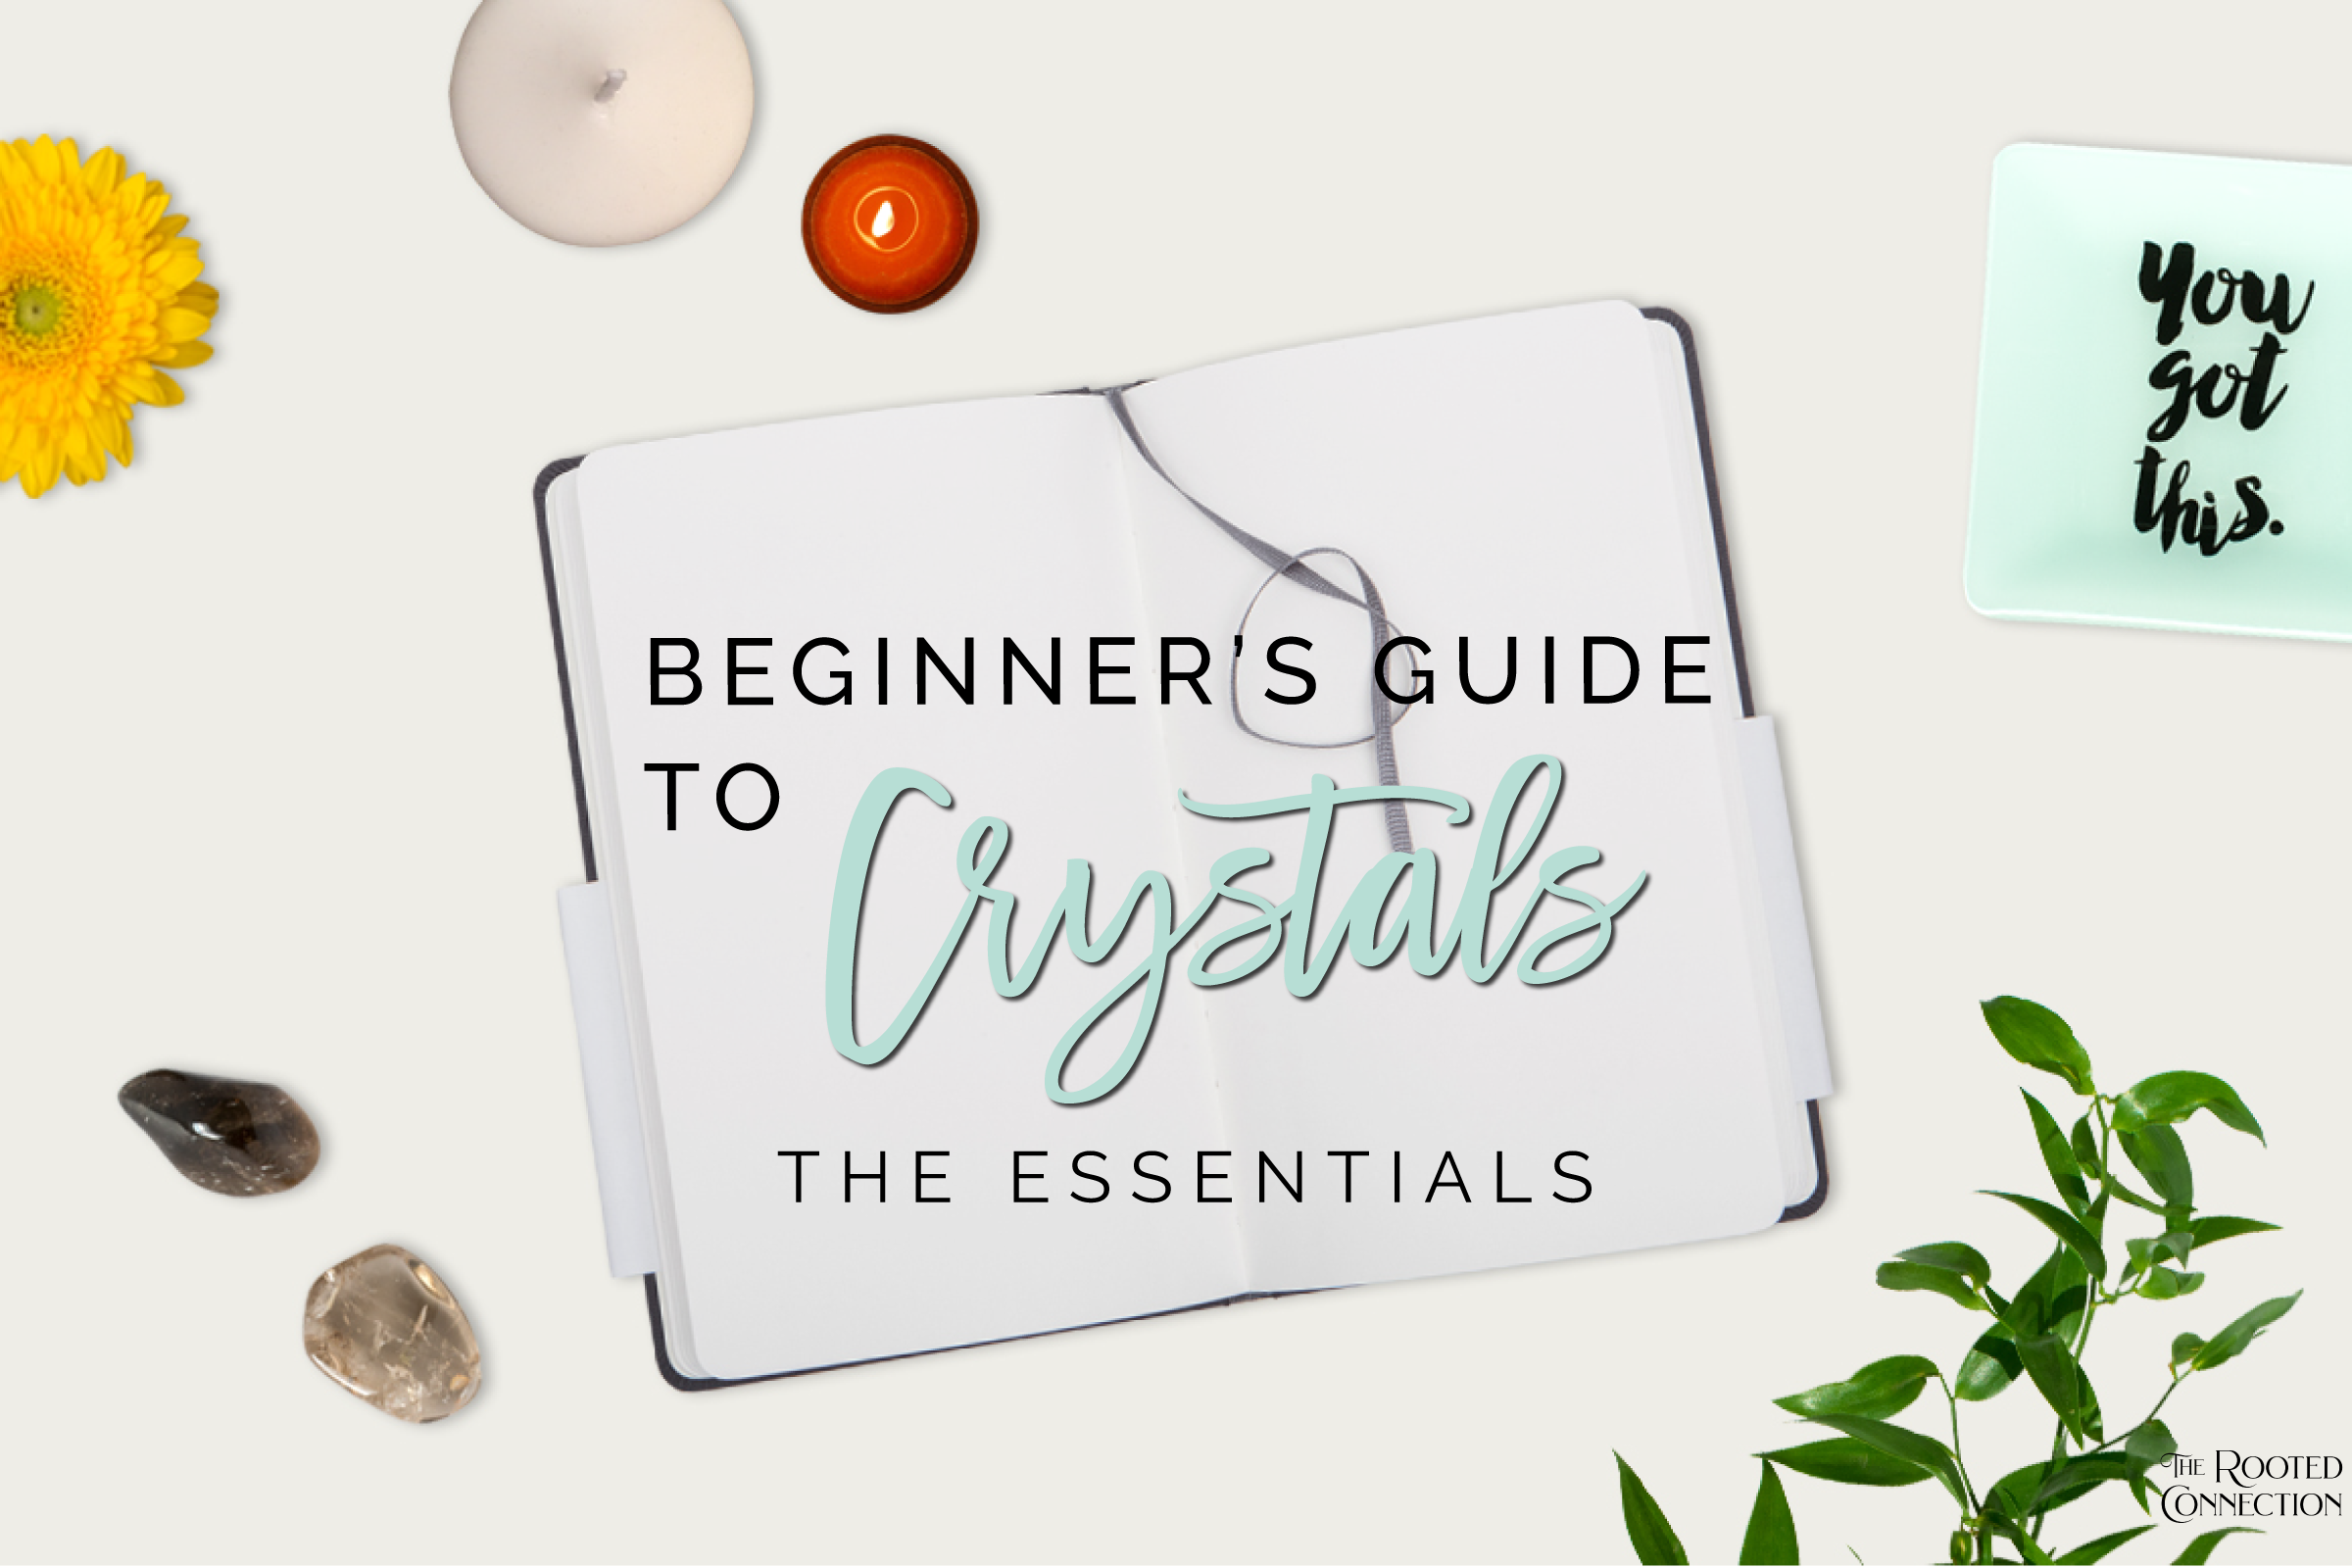 Beginners' Guide to Crystals